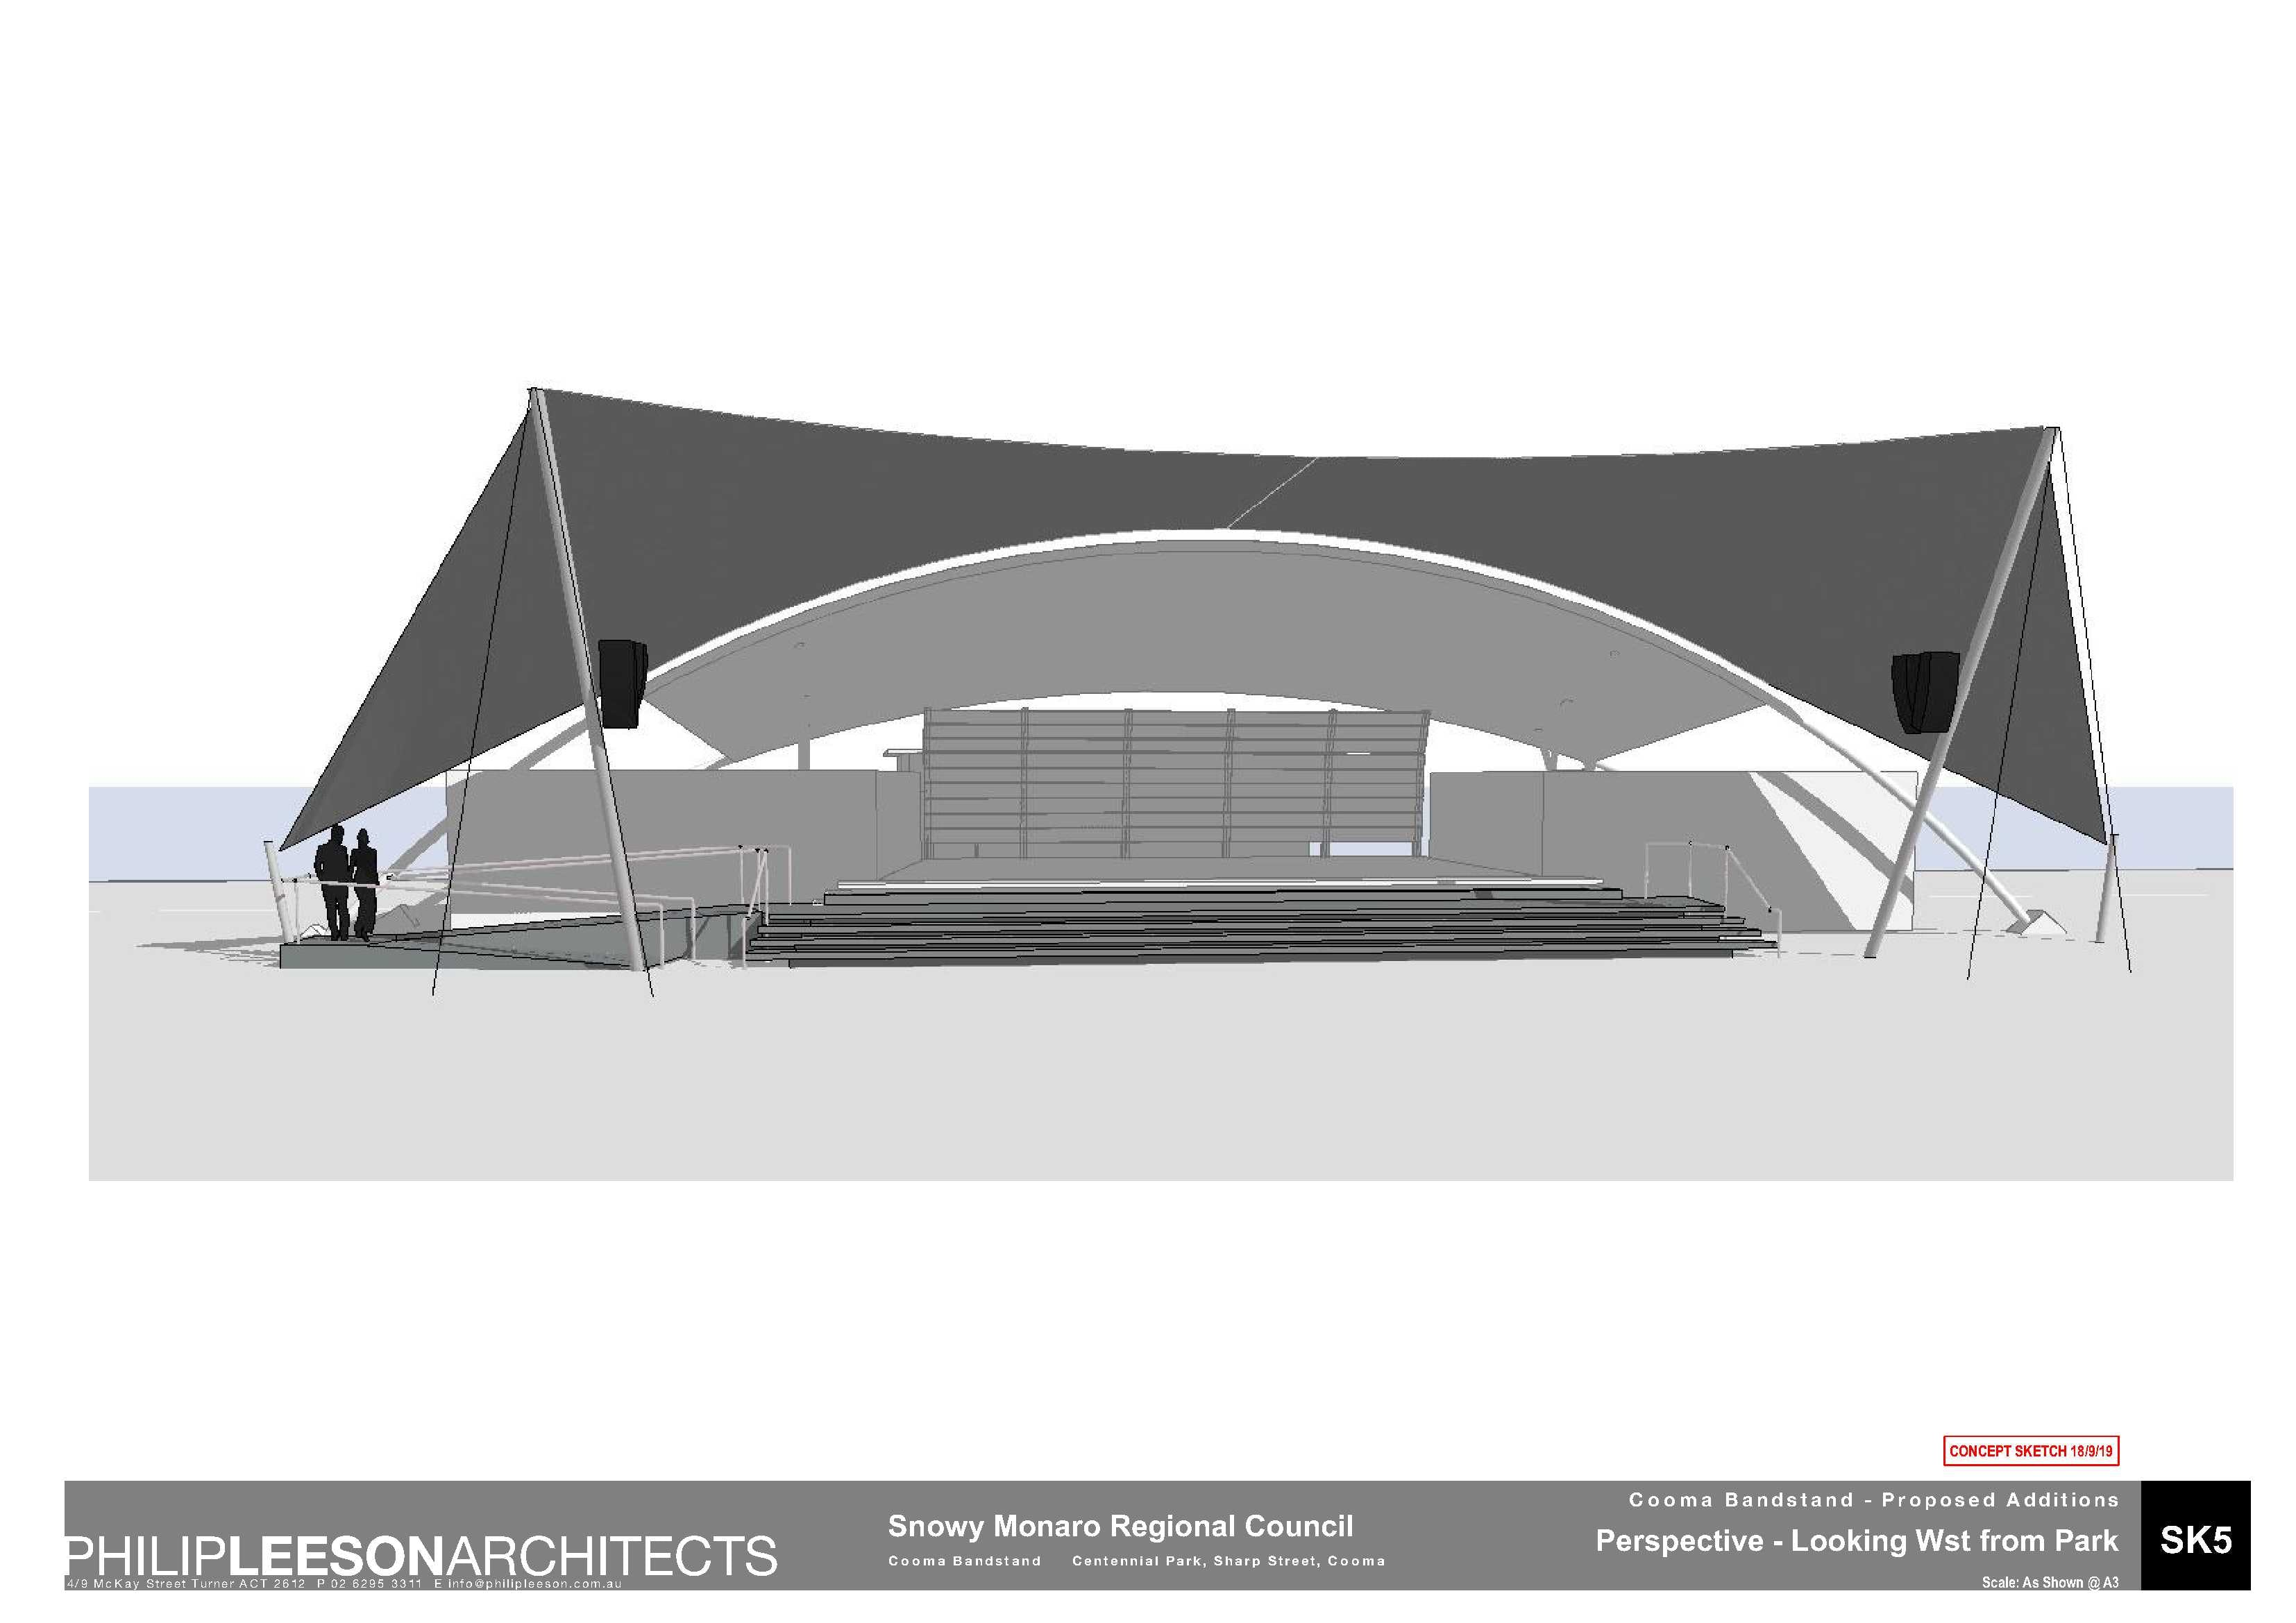 Cooma Bandstand - Proposed Additions_190918 Concept Sketch_5